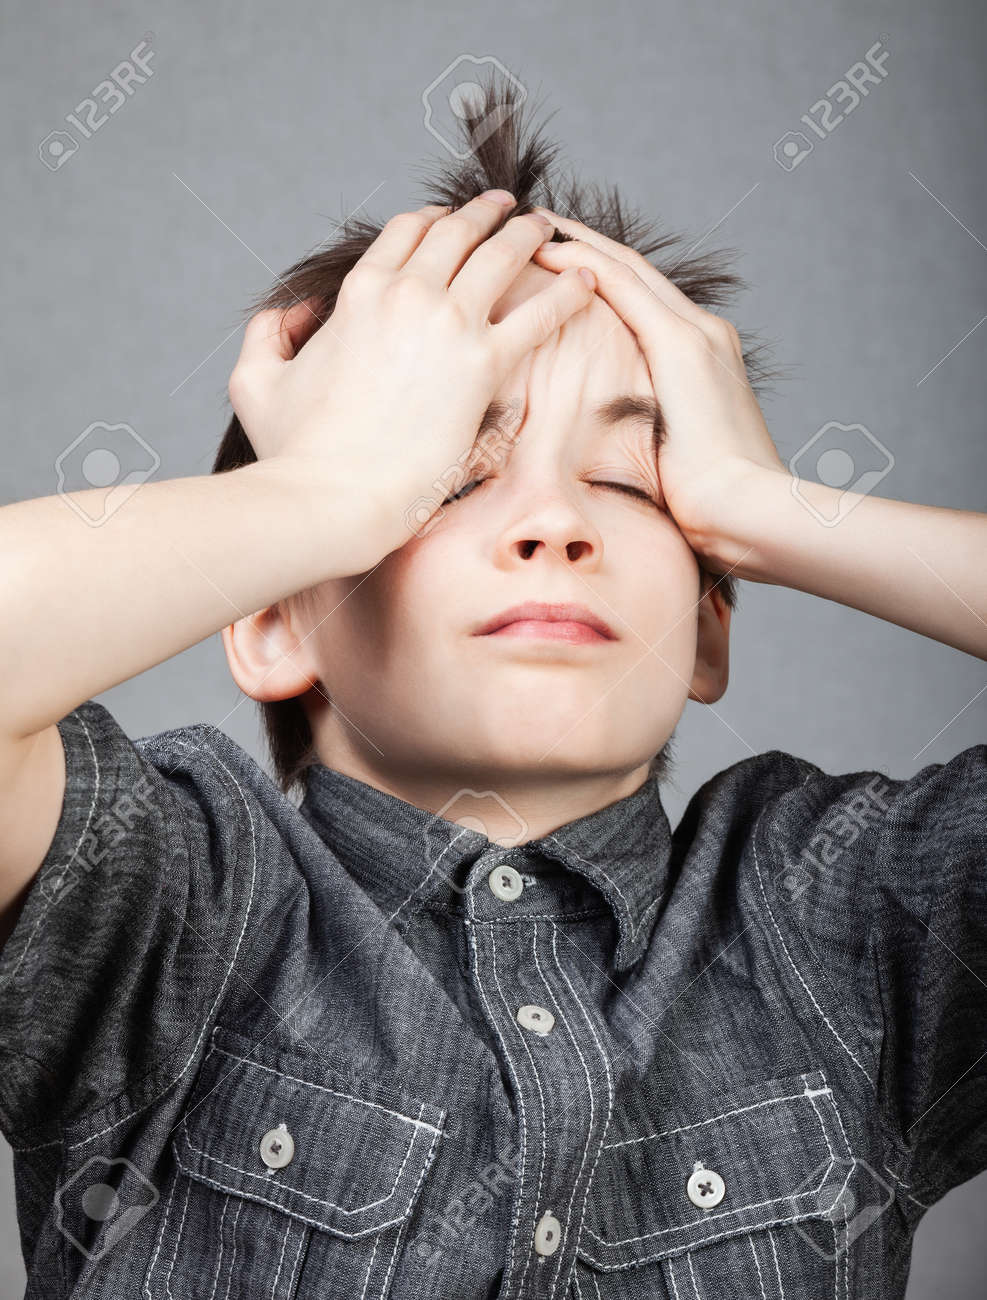 Portrait of schoolboy holding his head suffering from headache or stressed having learnind difficulties - 166814678